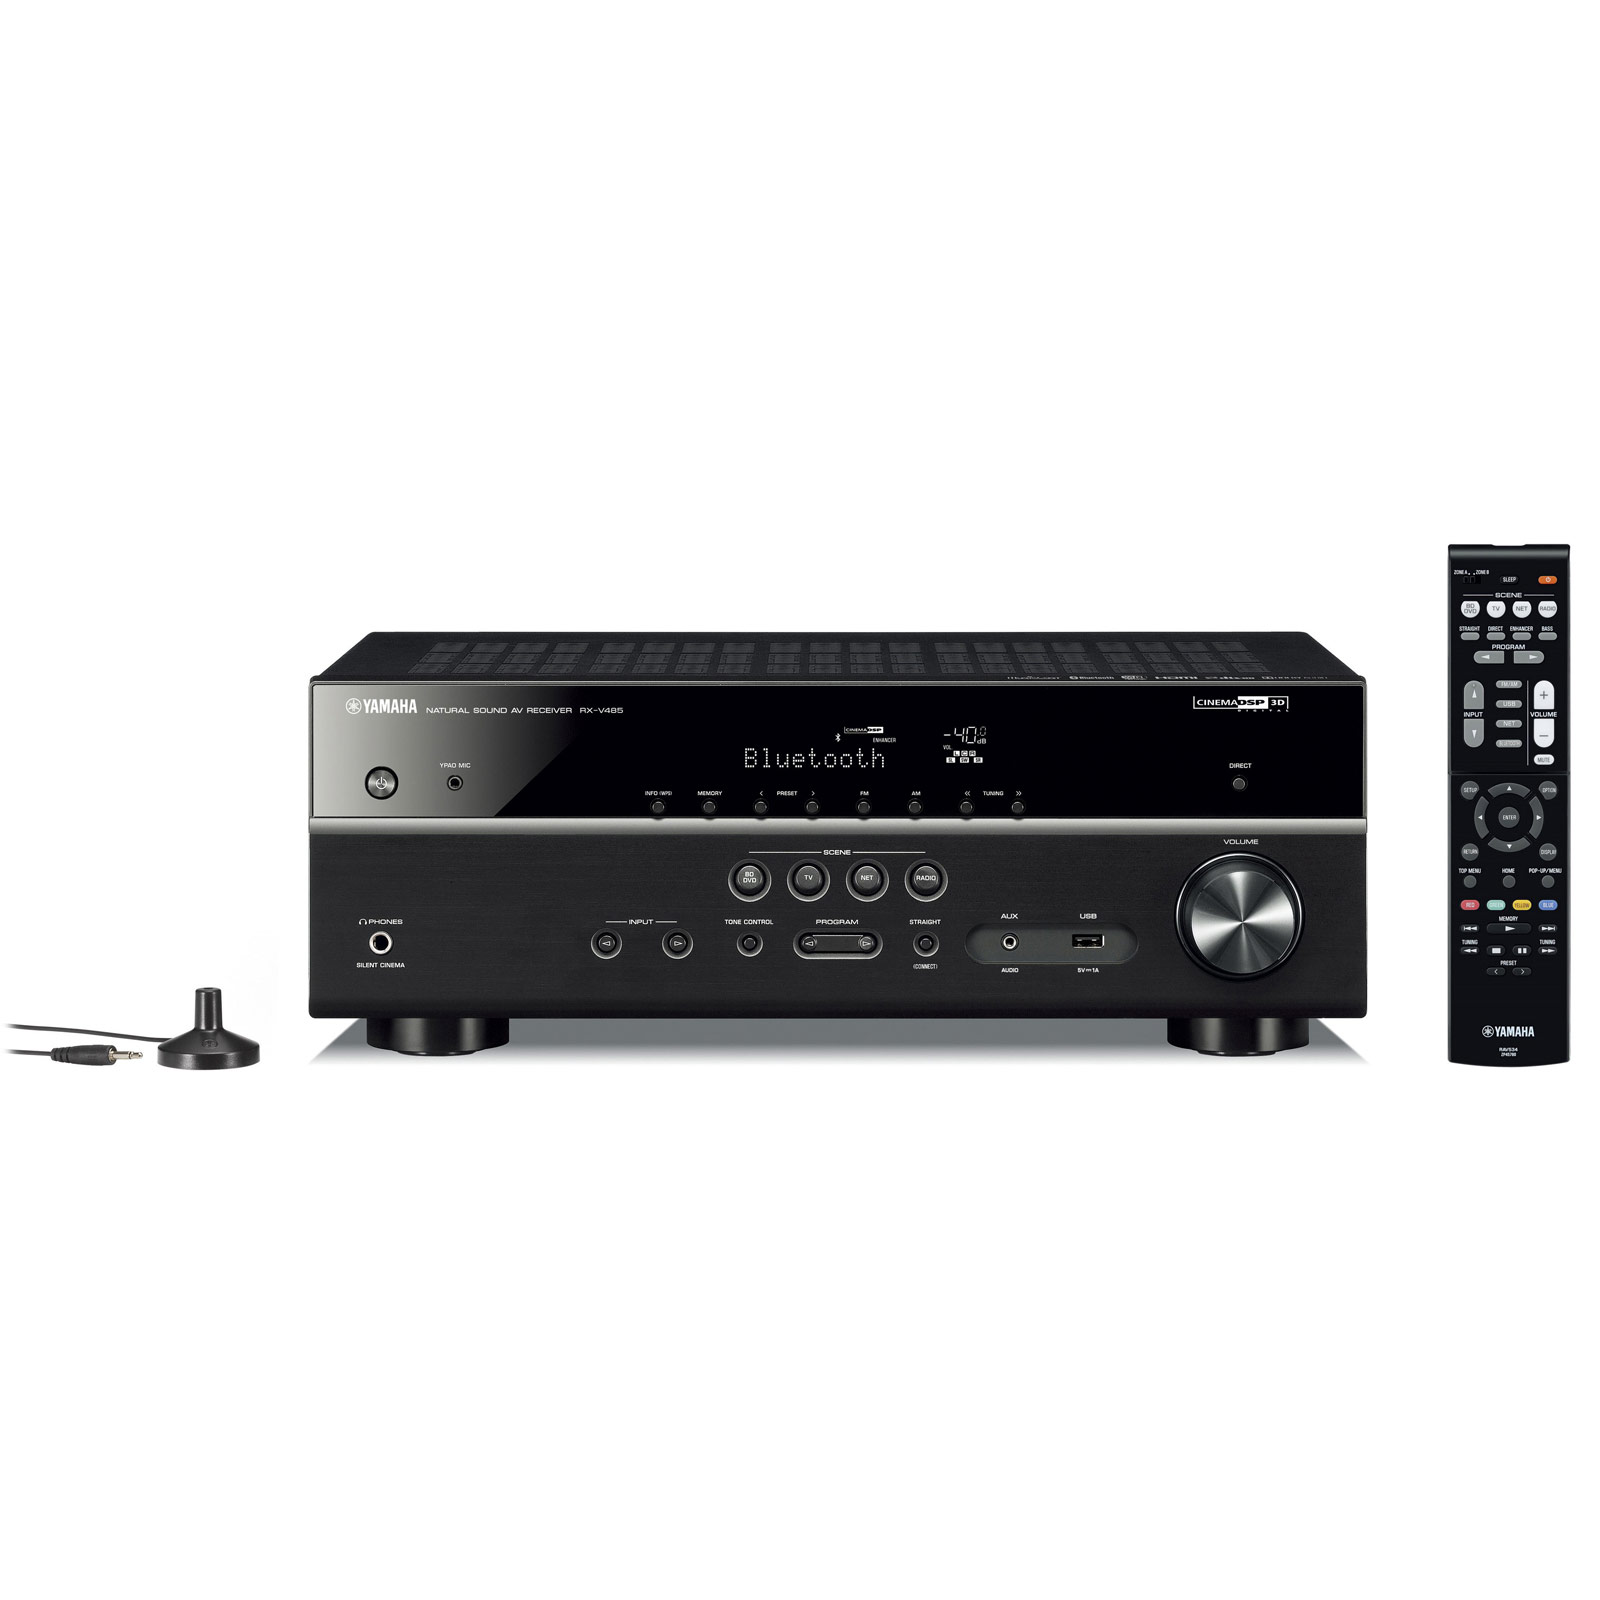 Ampli home cinéma Yamaha RX-V485 Noir Ampli-tuner Home Cinéma 5.1 3D 80 Watts/canal - Dolby TrueHD / DTS-HD Master Audio - 4 entrées HDMI 2.0 HDCP 2.2 - HDR 10/Dolby Vision/HLG - Bluetooth/Wi-Fi/AirPlay - MusicCast - Calibration YPAO